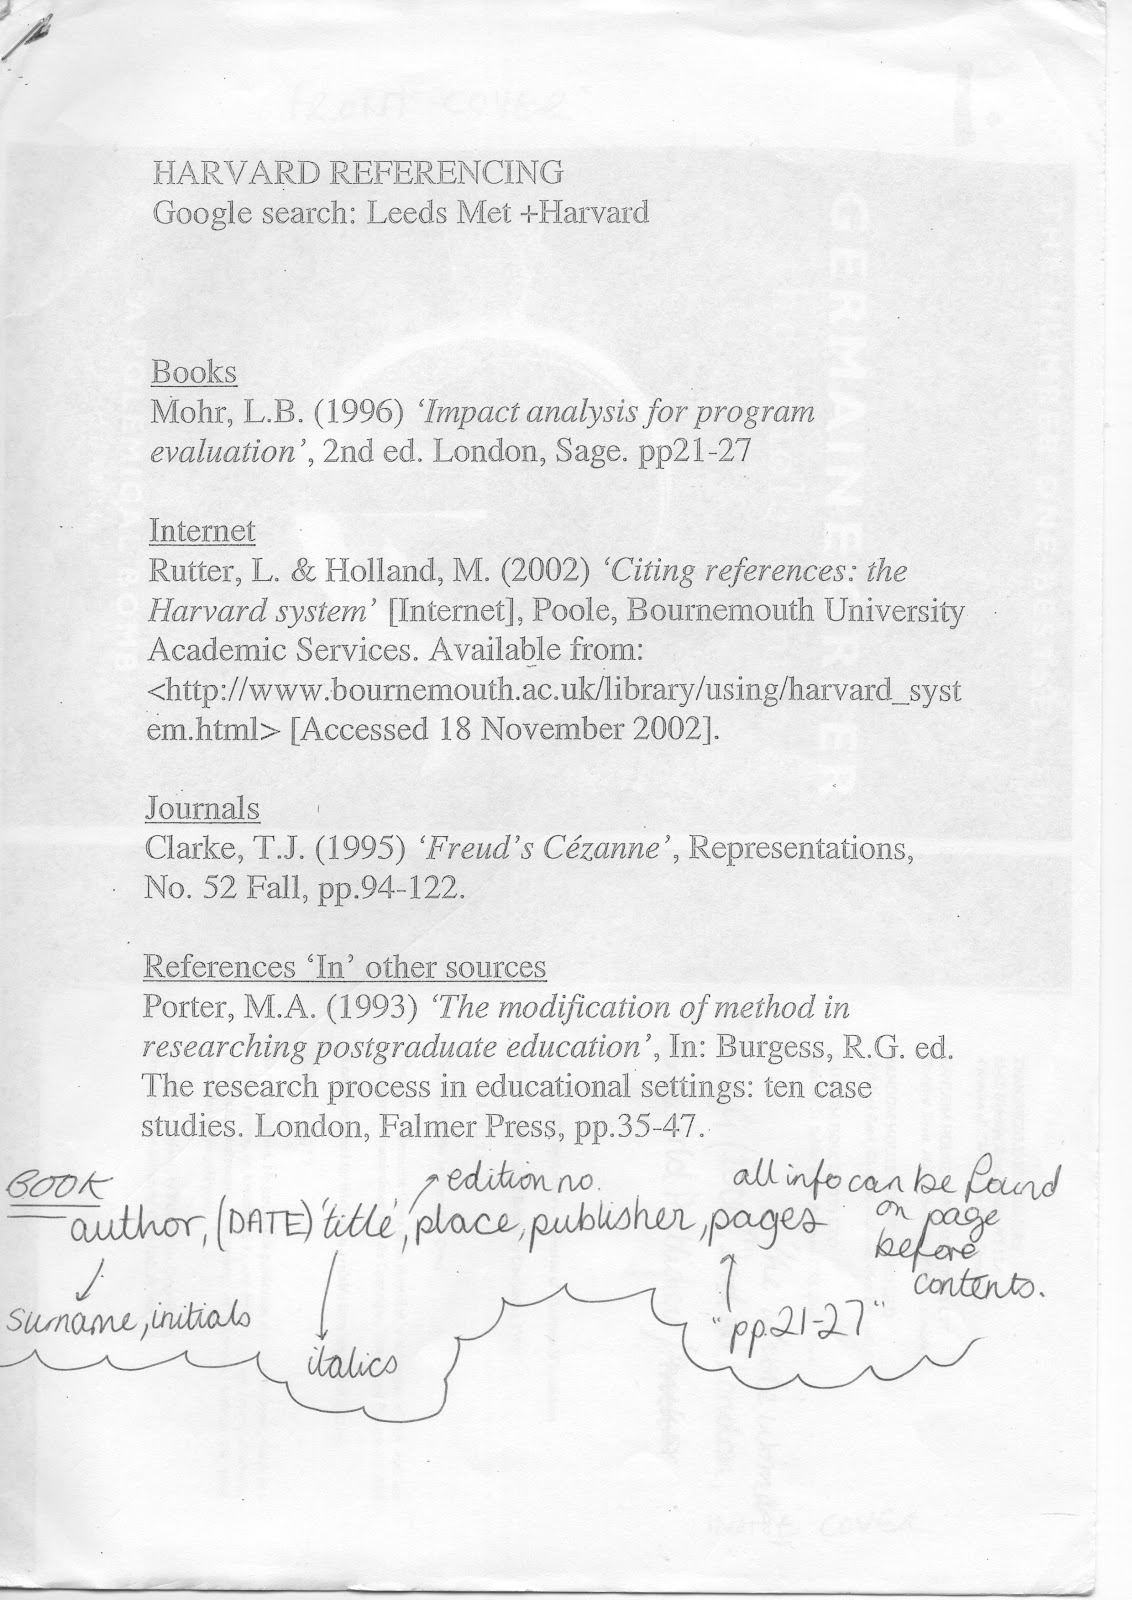 essay referencing task Tv is bad essay mood about school bully essay kannada essay on the middle ages crusades power essay writing harvard referencing advantage disadvantage essay phrases ielts sample essay about free trade equilibrium examples essay ielts new topics 2017 writing autobiography essay cambridge university press.